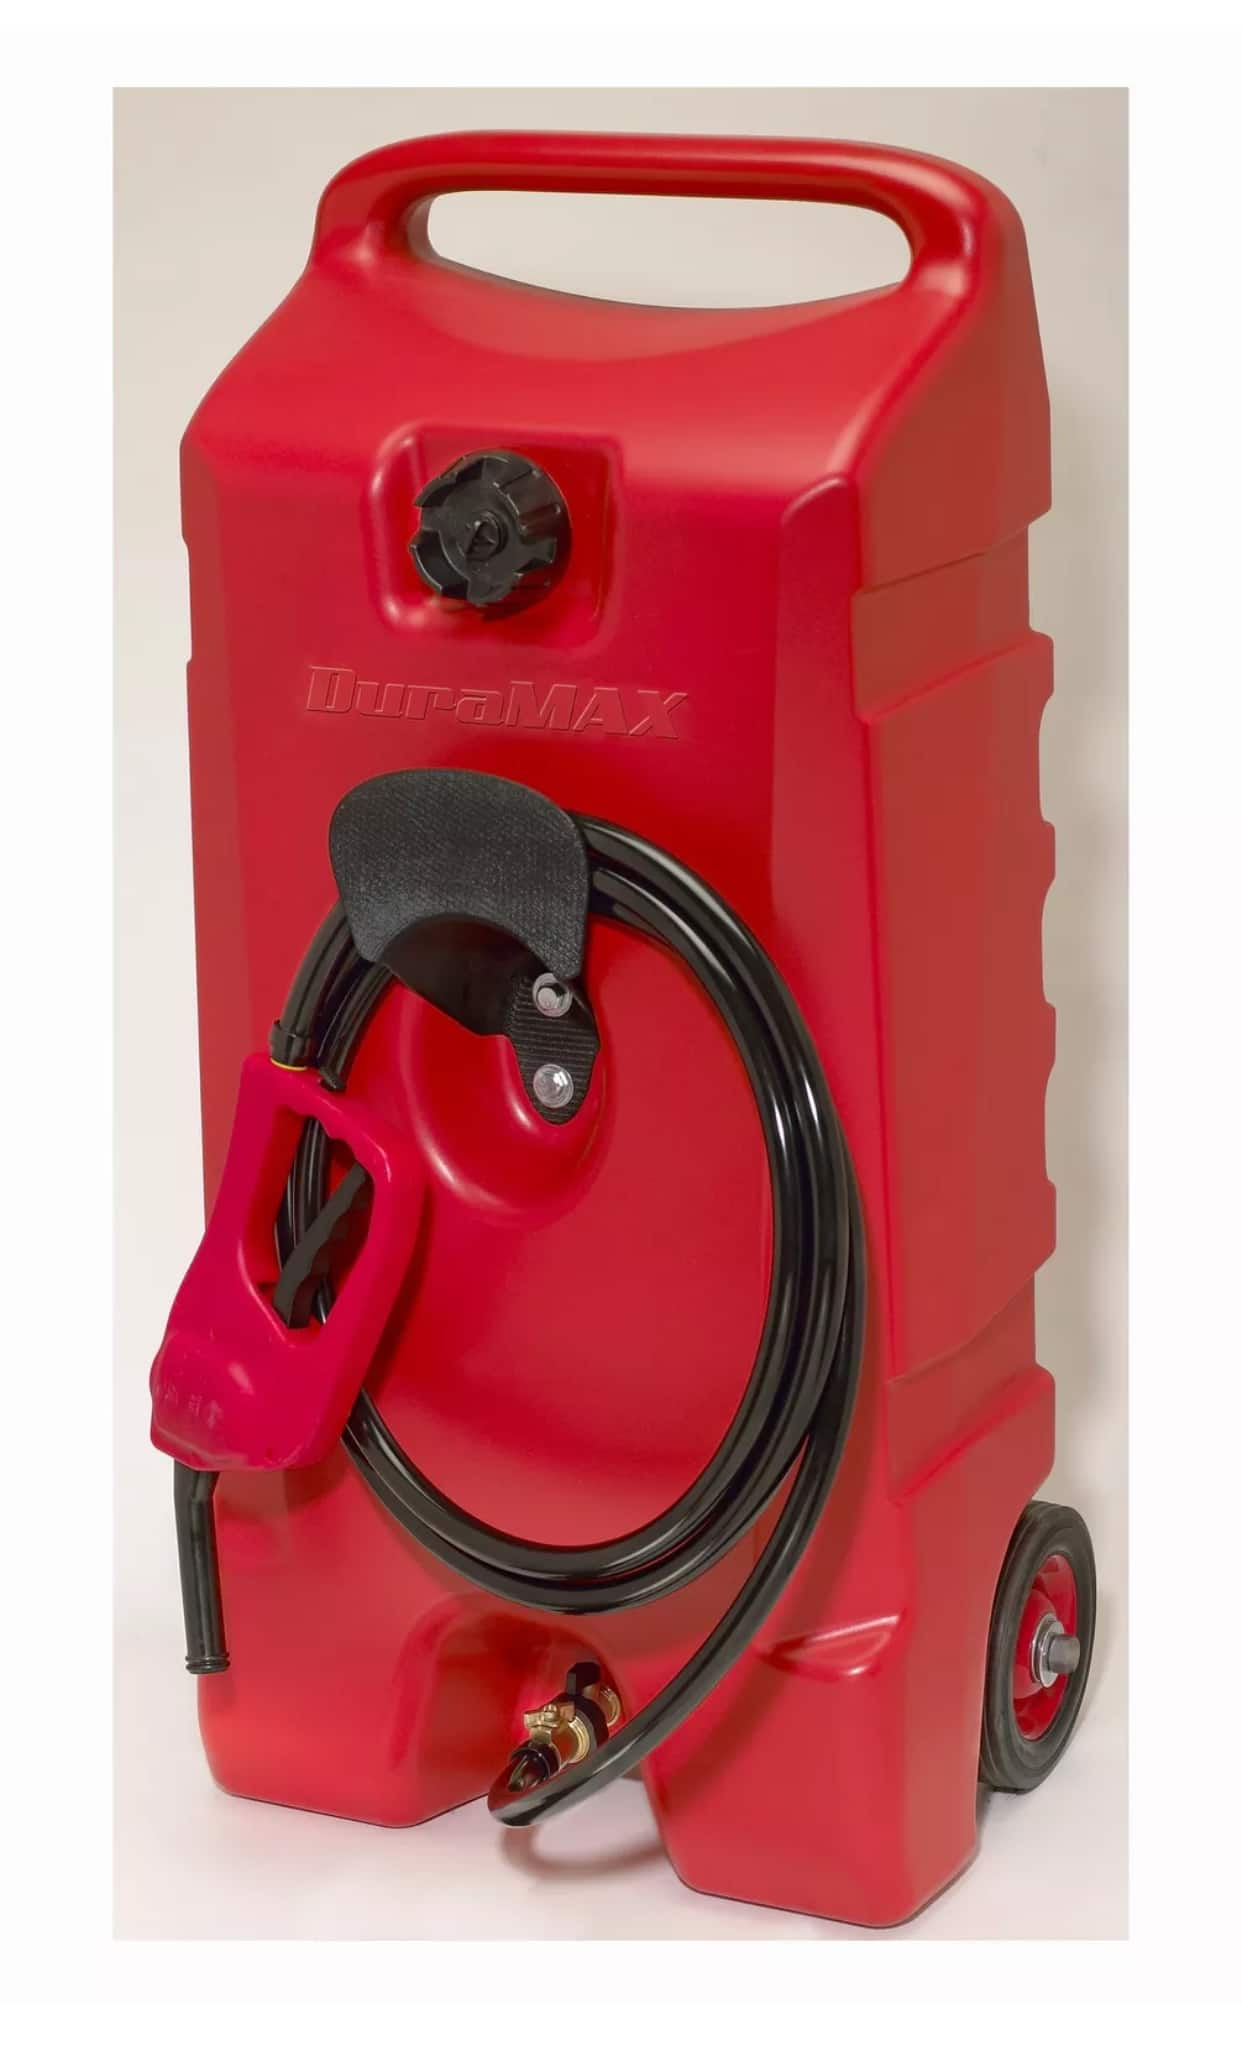 Flo 'N Go 14gal fuel container gas can fuel caddy